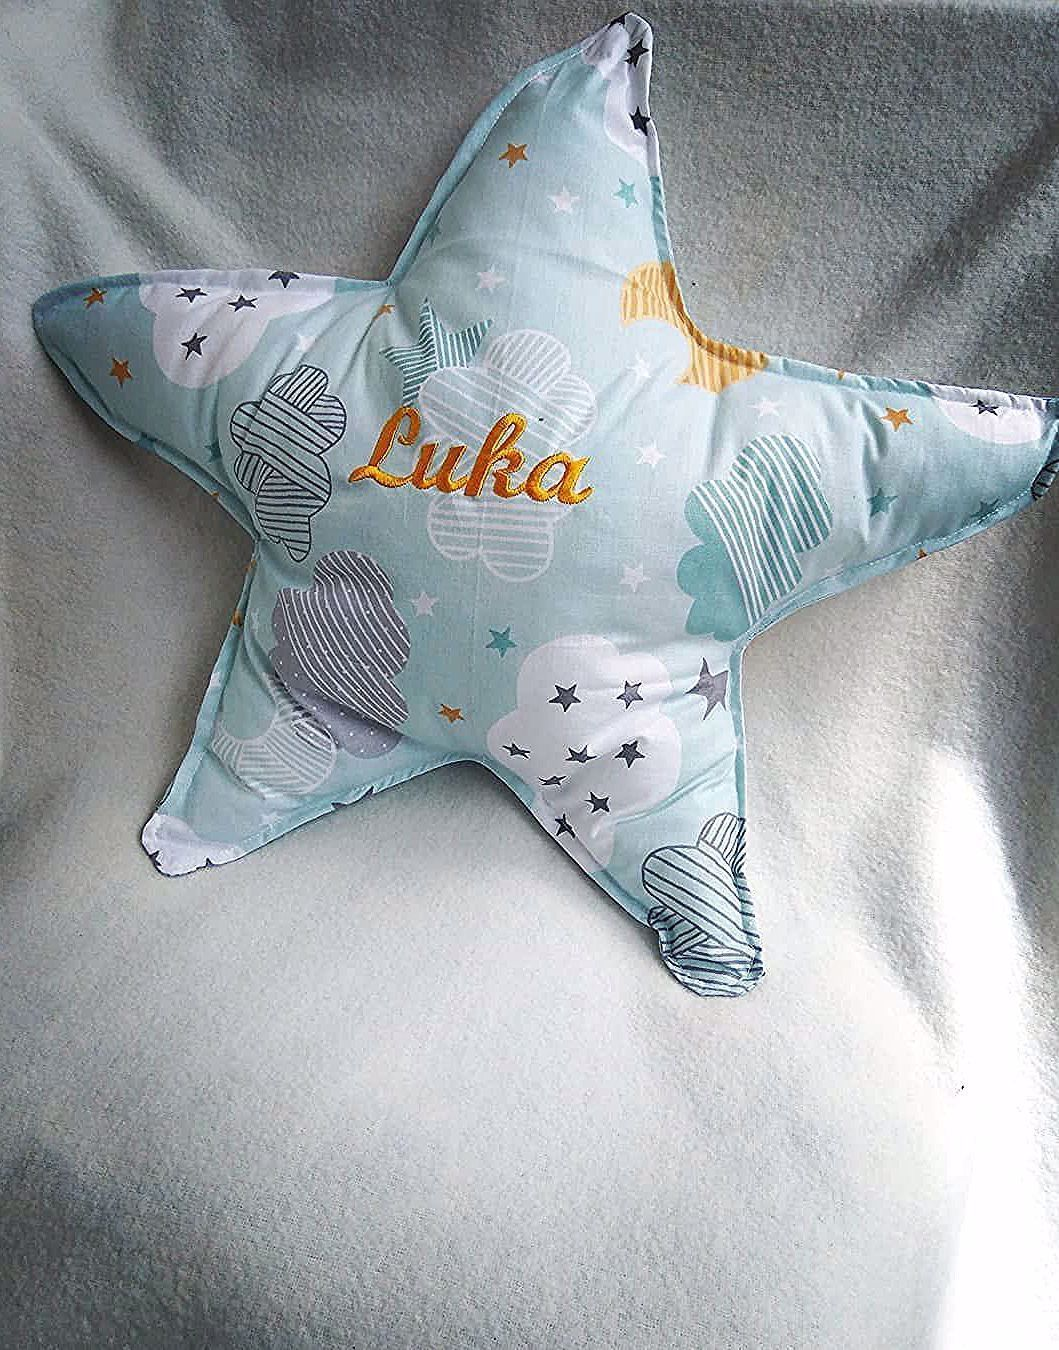 Jastuci različitih oblika za velike i male.  Vezemo imena, poruke i aplikacije!  #craftymoms #momlife #momandbaby #babygoods #kids #kidsacessories #homemadeproduct #handmade #gift #girls #boys #inspiration #newideas #personalizegifts #roomdecor #stuffforkids #decoration #kidsbedroom #pillows #toys #jastucici #mojjastucic #ukrasnijastuci #jastucicizadecu #personalizovanijastuci #madeinmontenegro #podgorica #maminakreativnaradionica #roomdecor boys